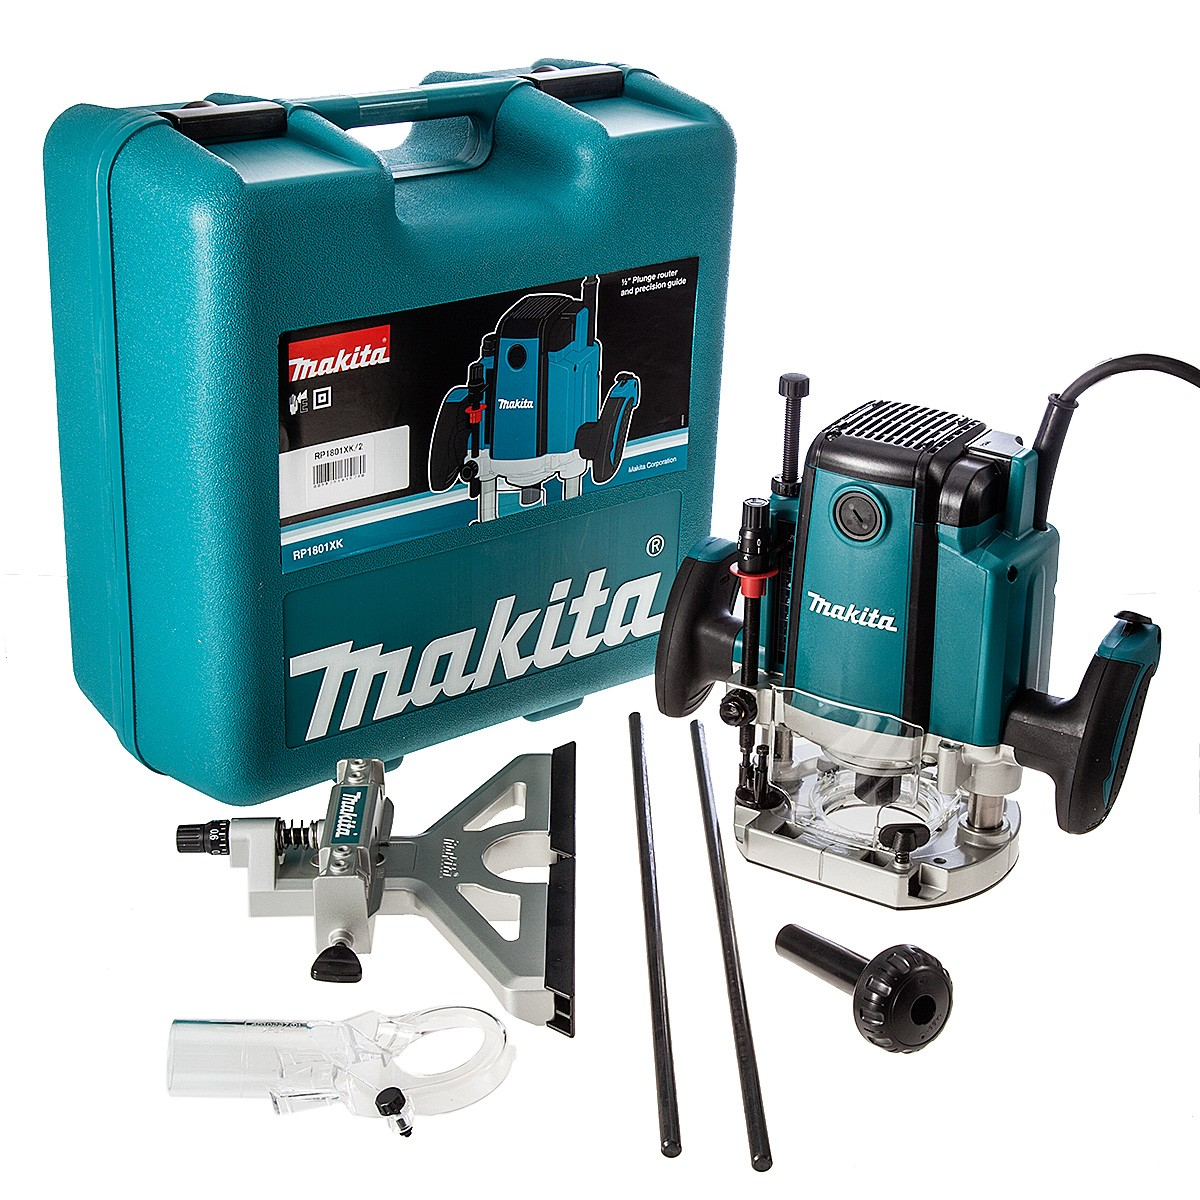 "Makita RP1801XK 1/2"" Plunge Router & Fine Adjustment Guide in Heavy Duty Carry Case"